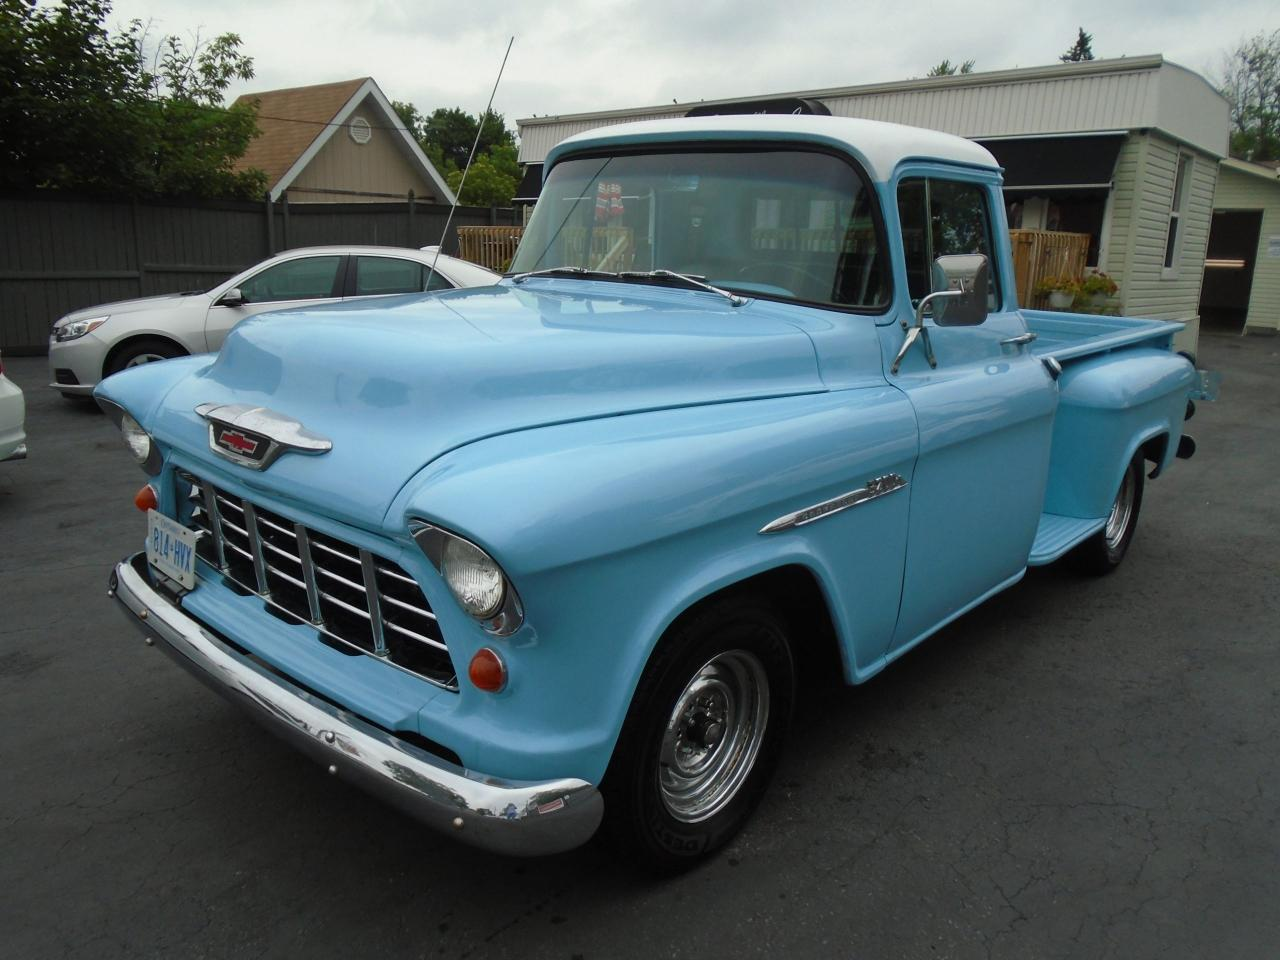 Used 1955 Chevrolet Pickup (Other) 3200 Series Half-Ton Step